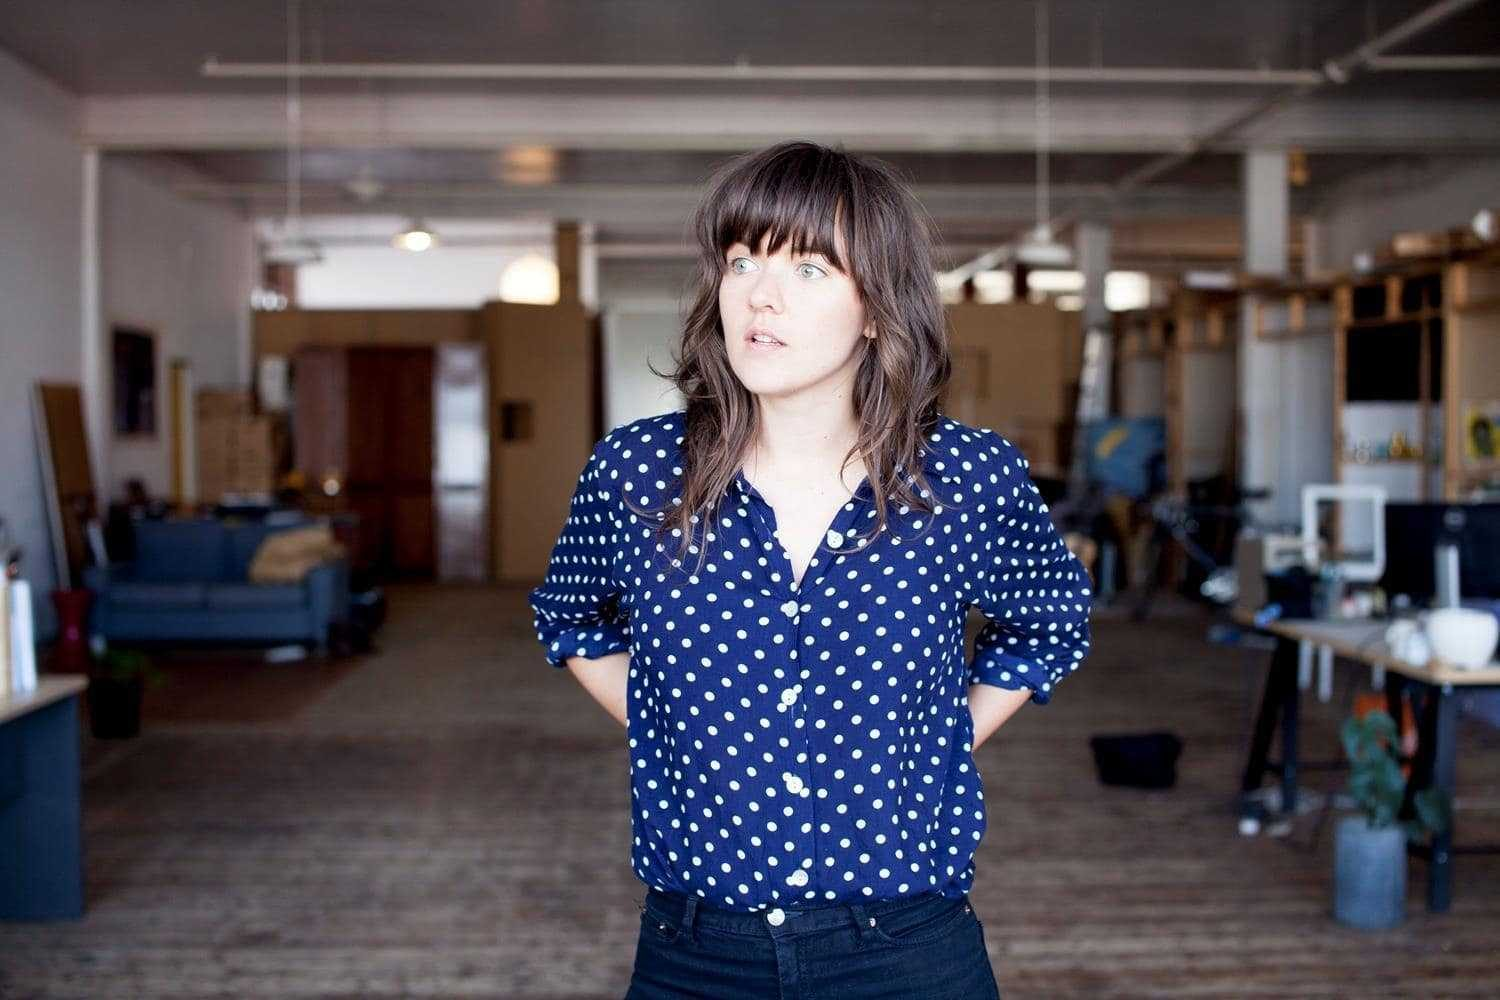 It looks like we're getting something new from Courtney Barnett later this week